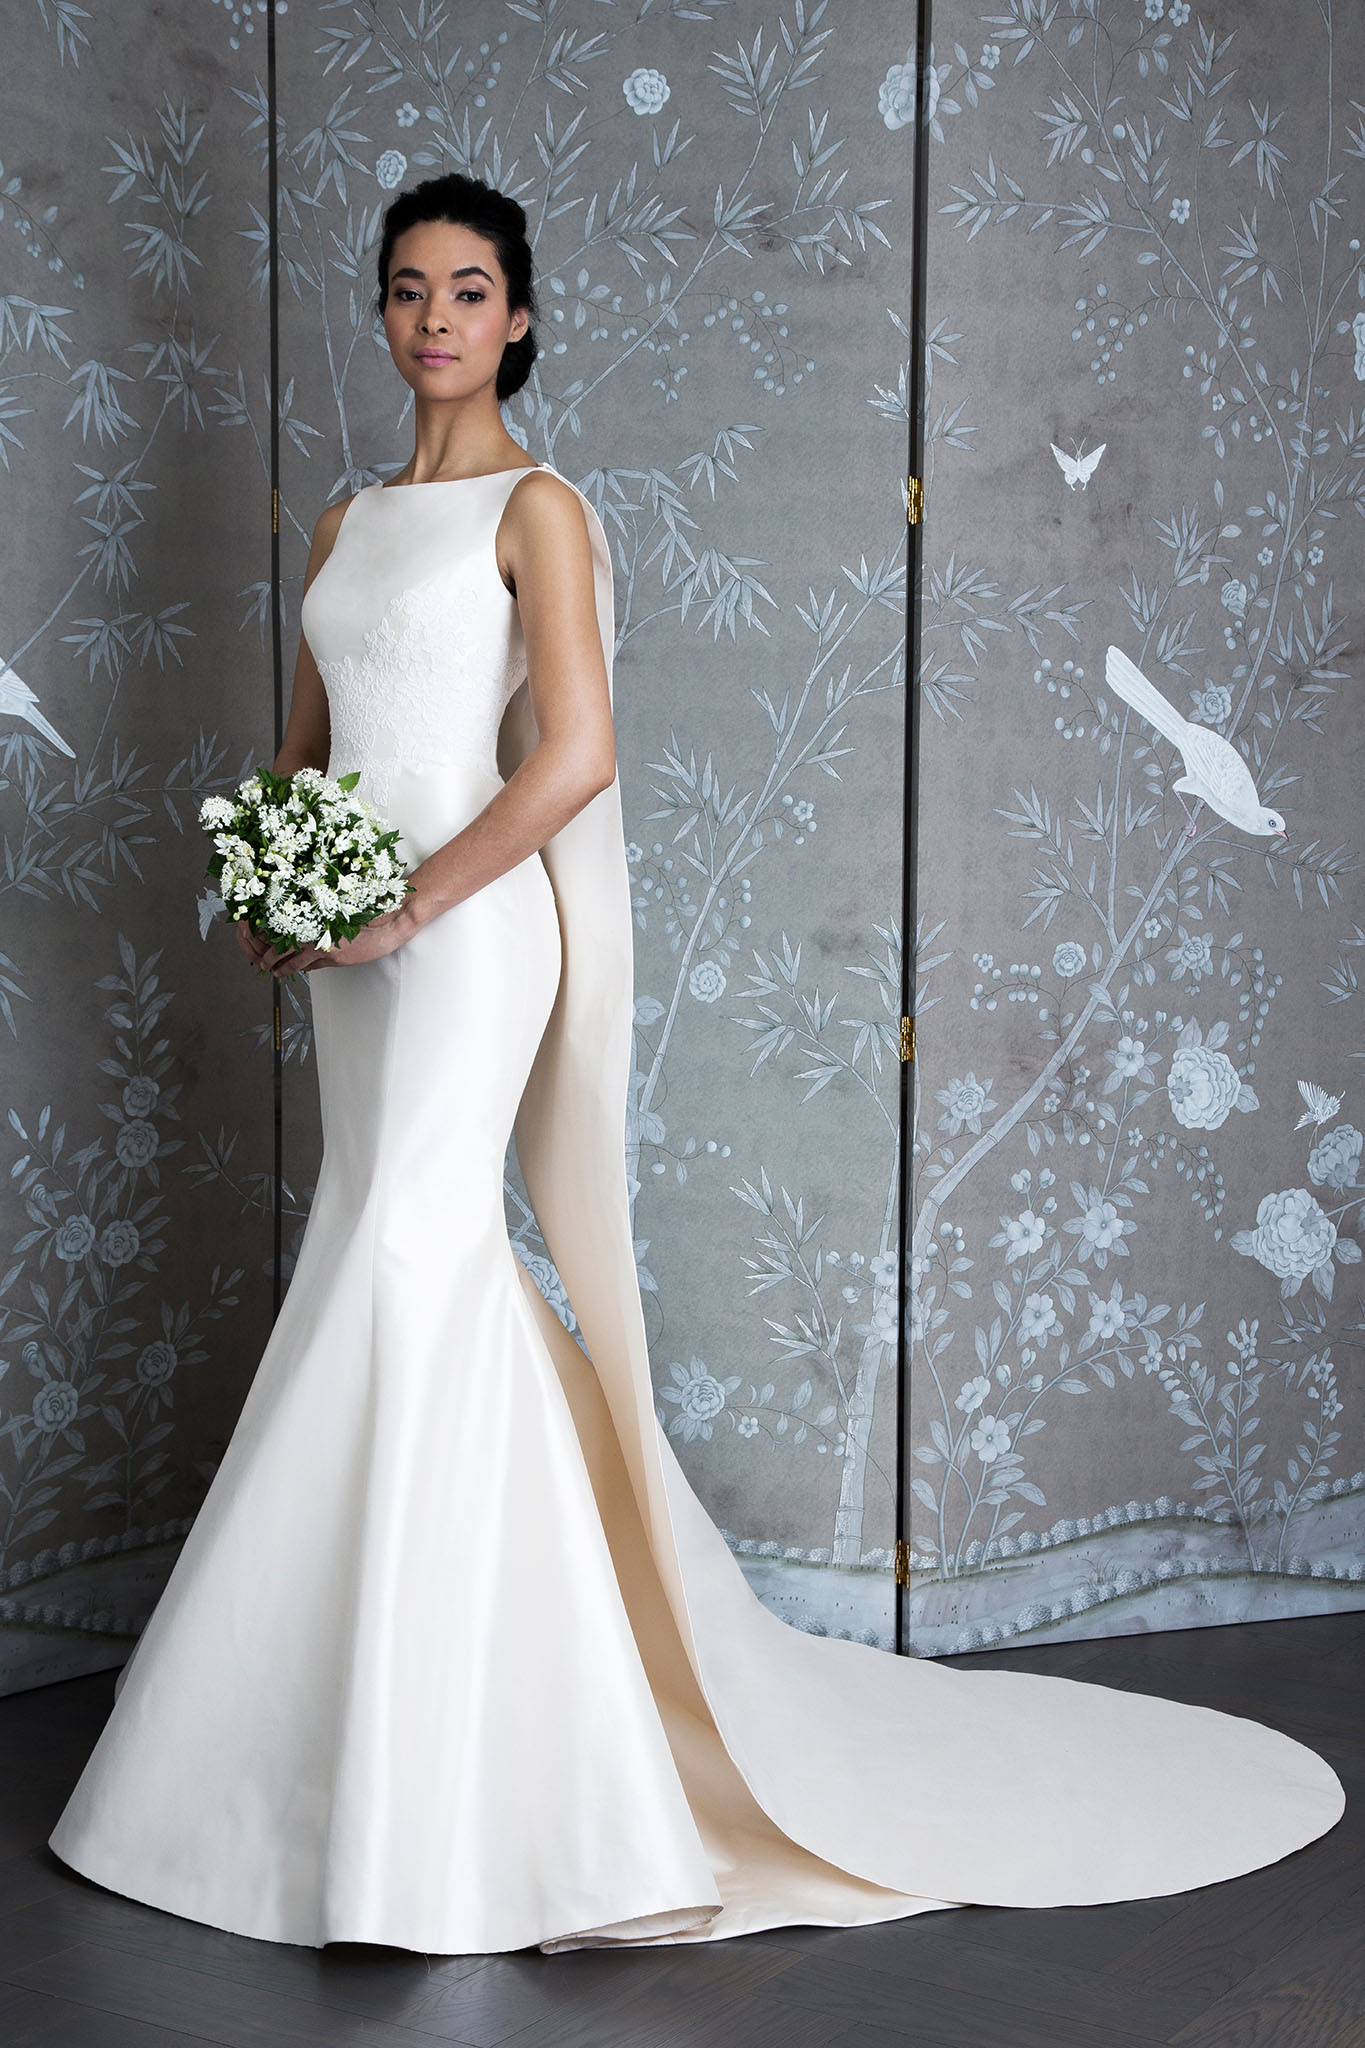 Legends Romona Keveža Bridal Spring 2019